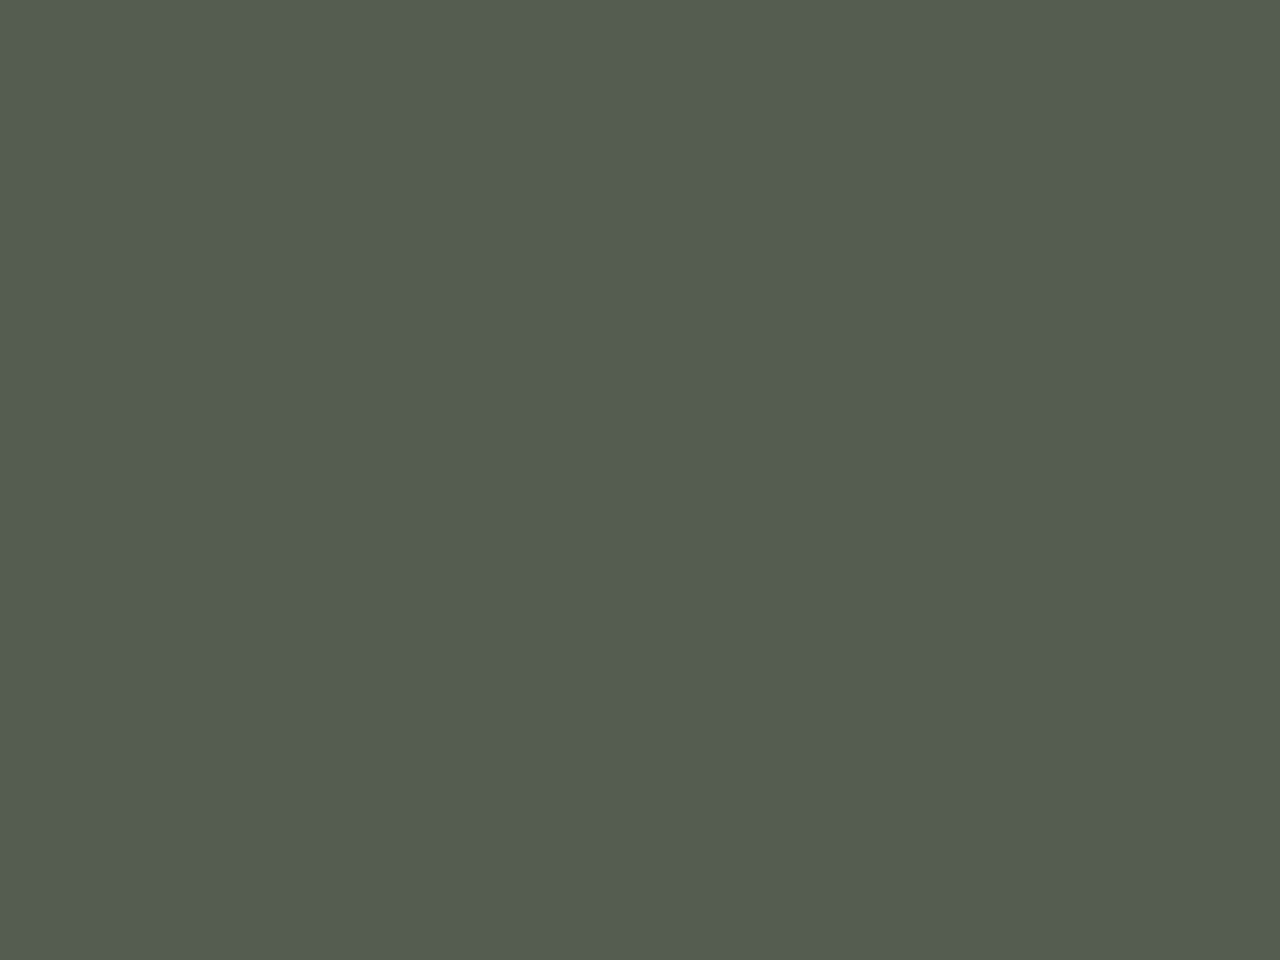 1280x960 Ebony Solid Color Background